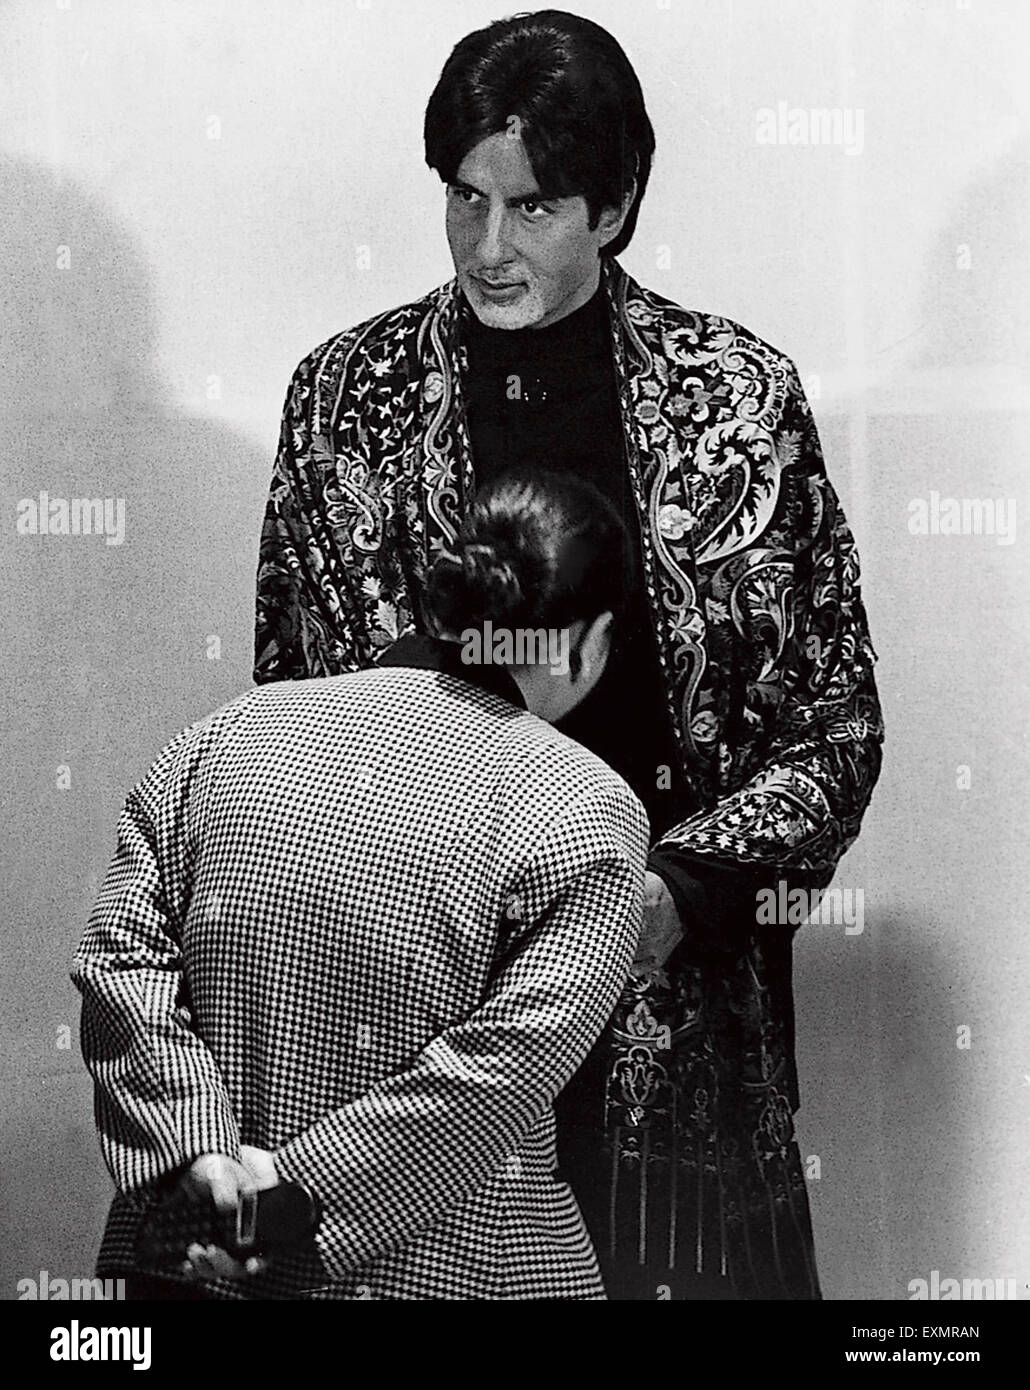 Wax figure Indian Bollywood actor Amitabh Bachchan being inspected by a tourist at Hotel la Meridian Mumbai India - Stock Image